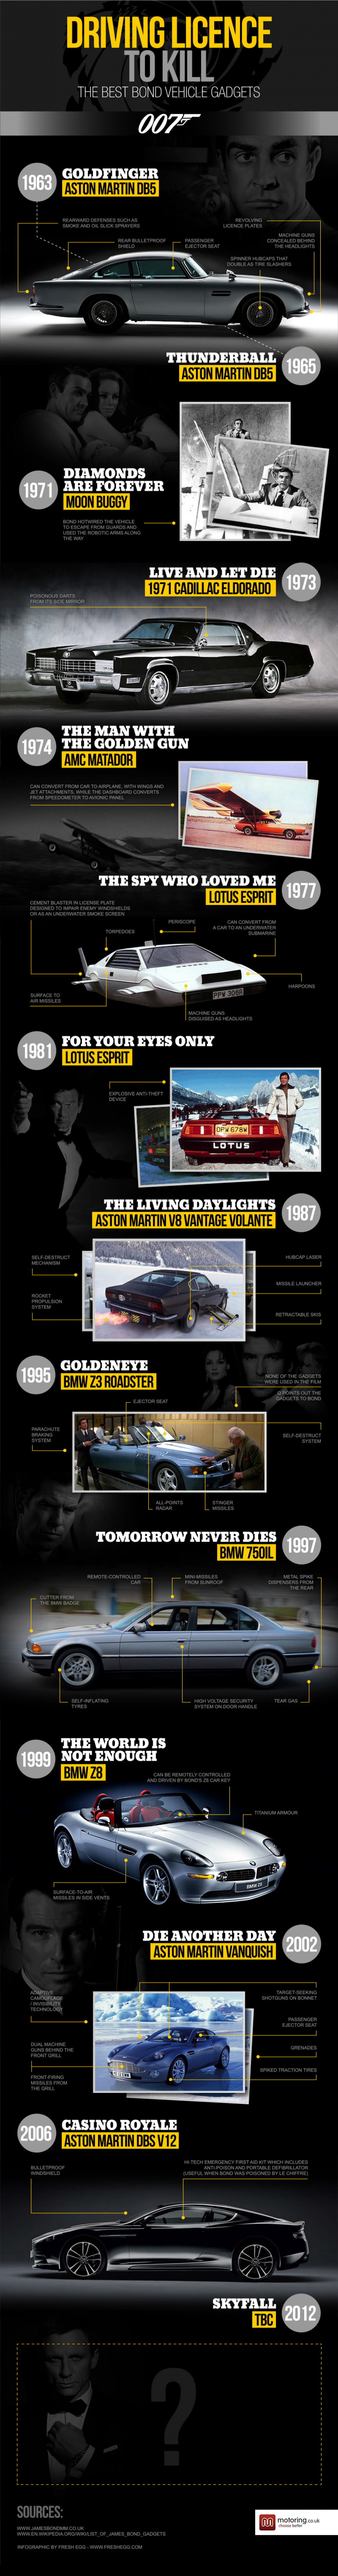 Driving Licence To Kill: The Best Bond Vehicle Gadgets Infographic